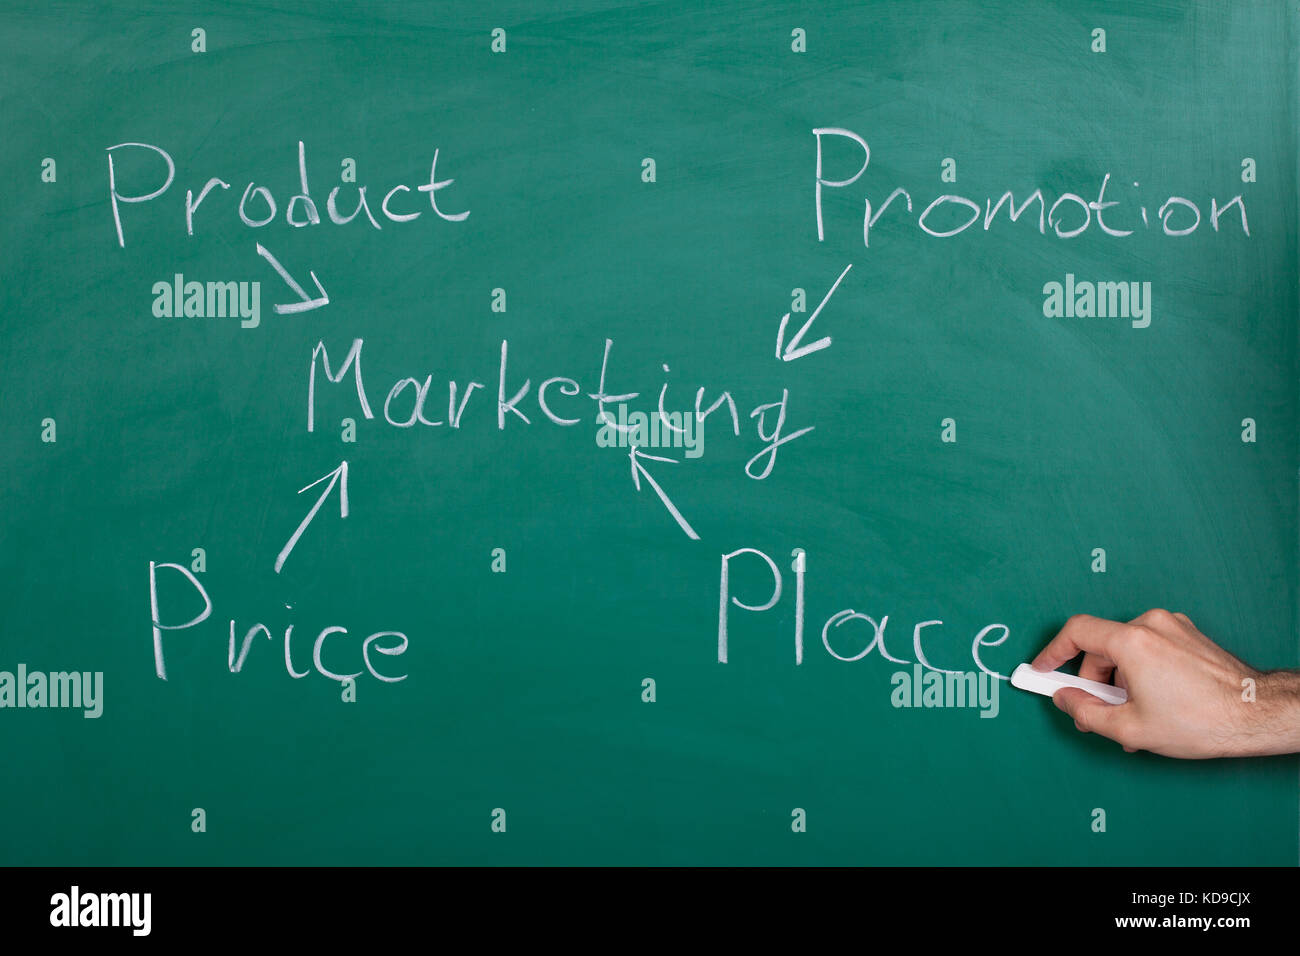 Hand Drawn Marketing Concept On Green Chalkboard - Stock Image